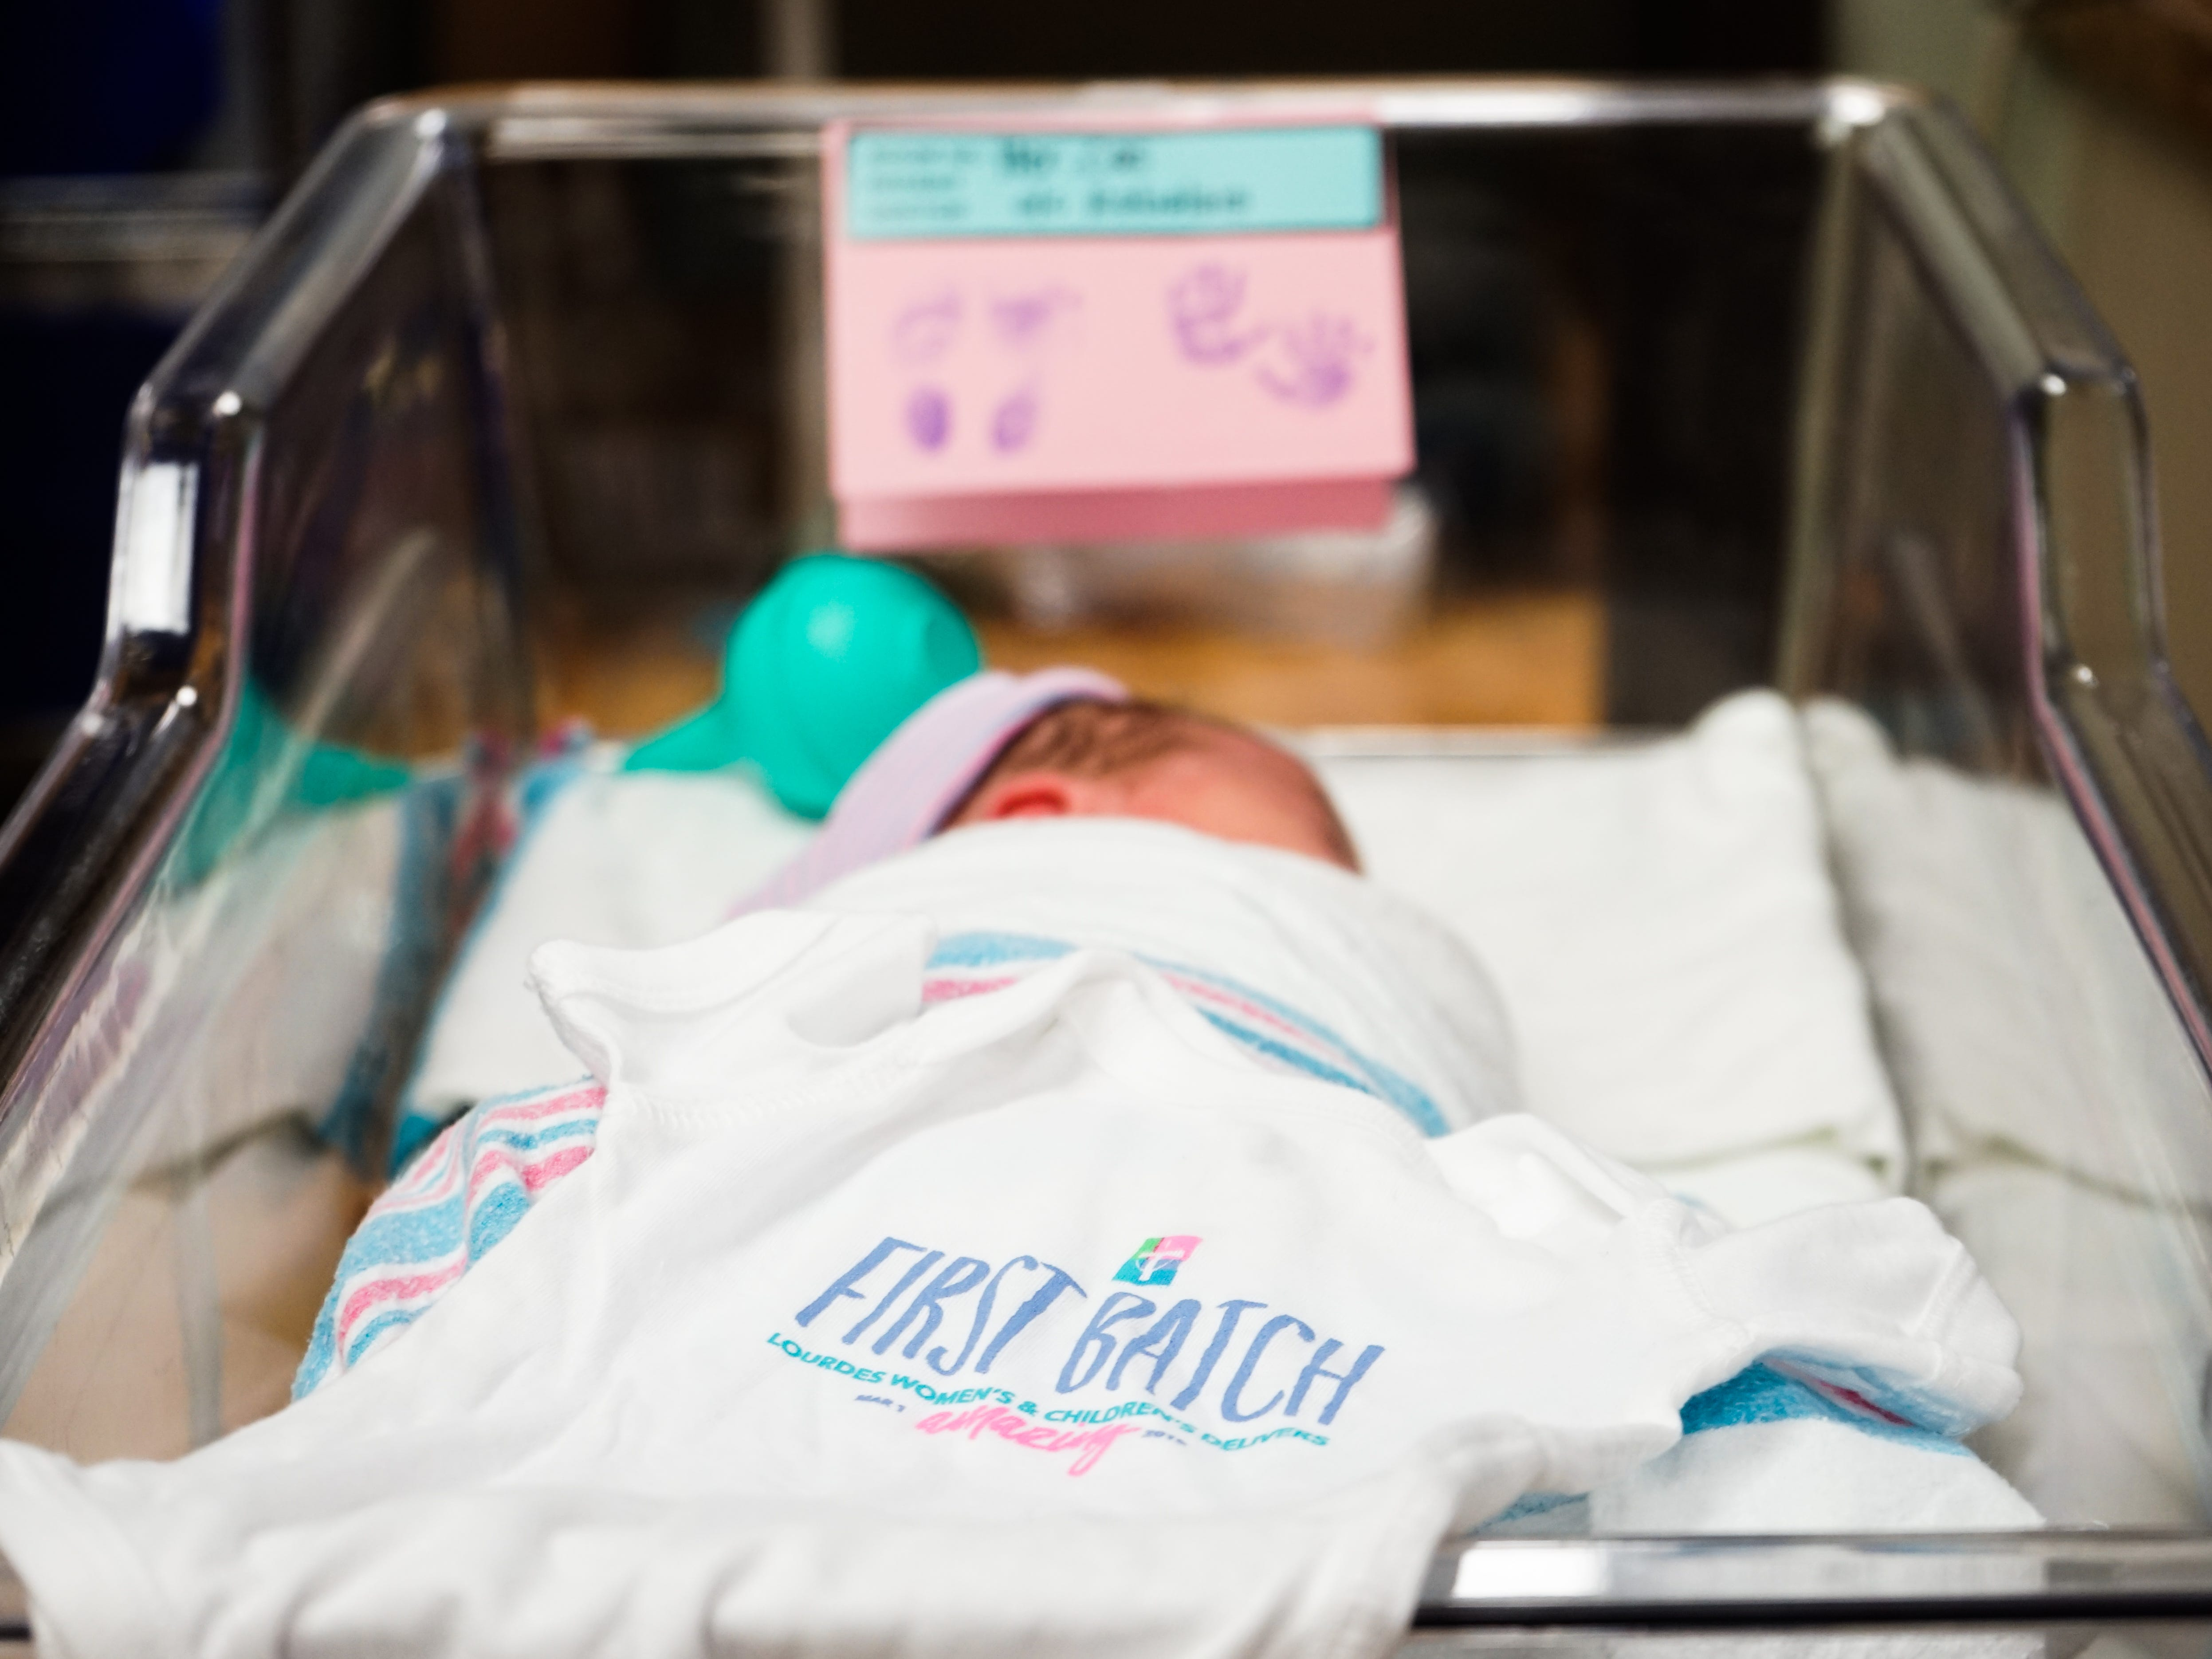 "The ""first batch"" of babies born at Our Lady of Lourdes Women's & Children's Hospital on Friday, March 1, received a special onesie commemorating the hospital's first day as part of the Our Lady of Lourdes system."